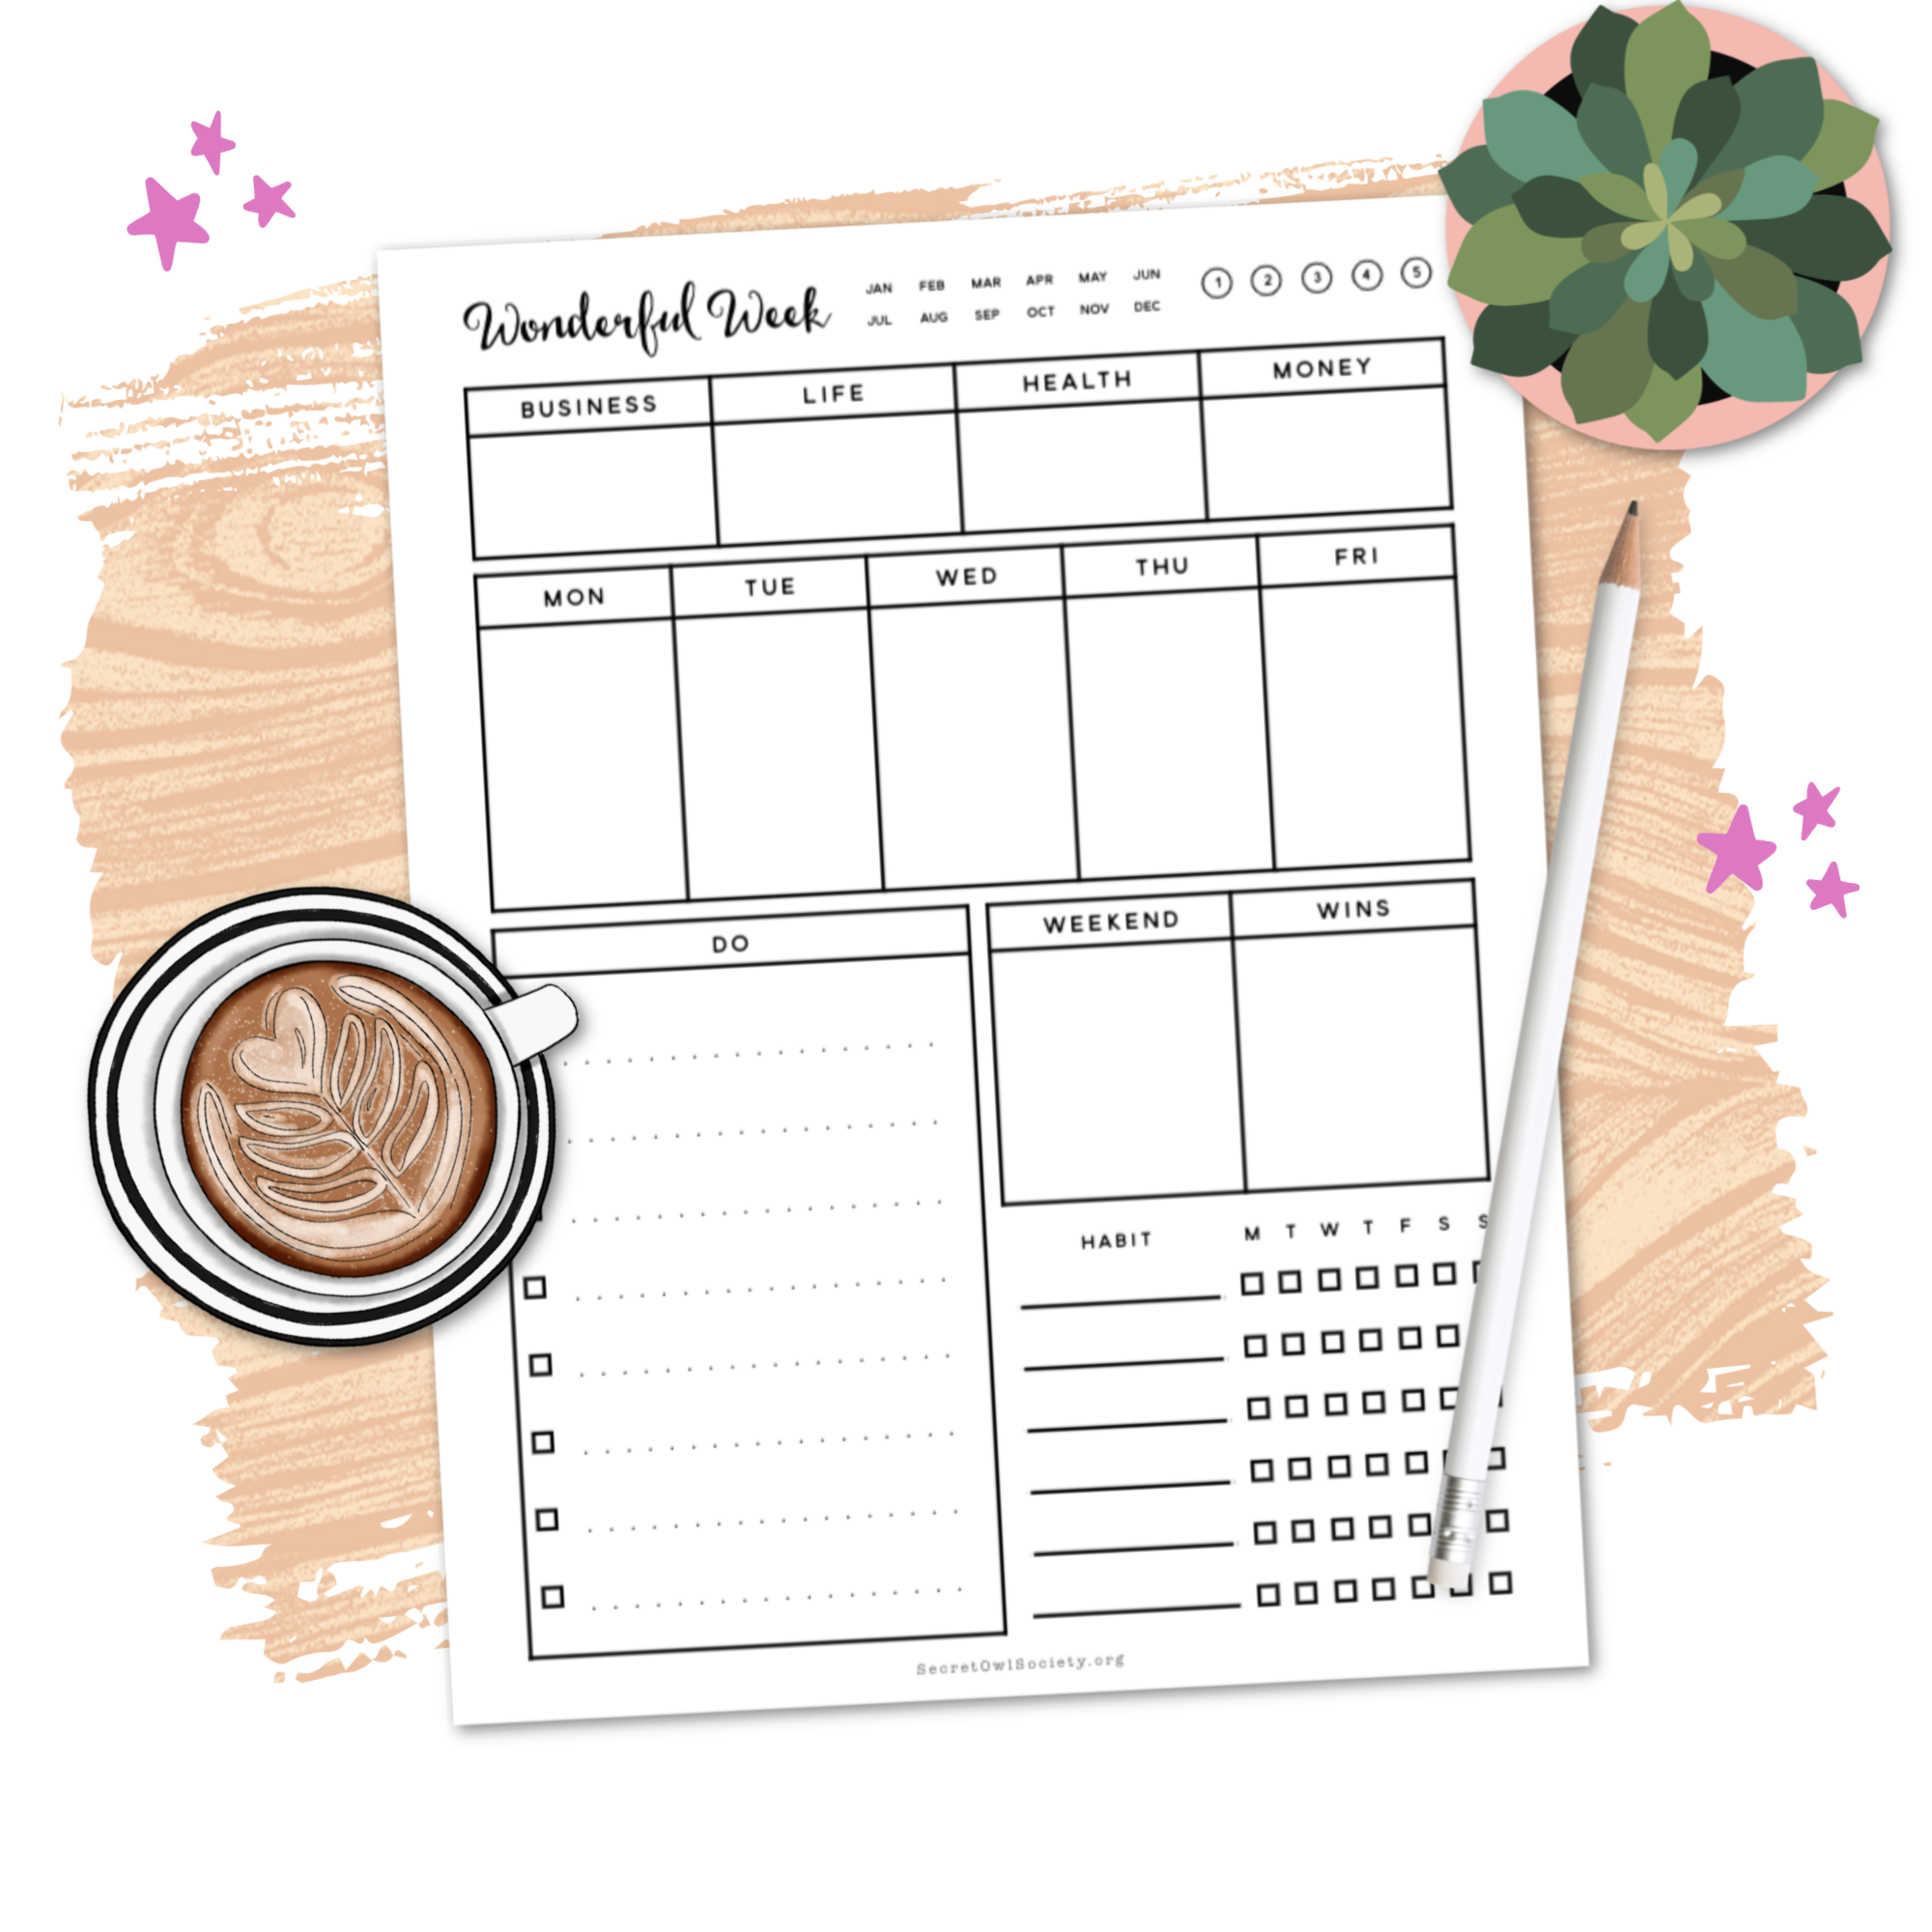 MY WONDERFUL WEEK PRINTABLE - Grab this free printable and get your habits, schedule, goals, and to-do's for the week all written down in one place!